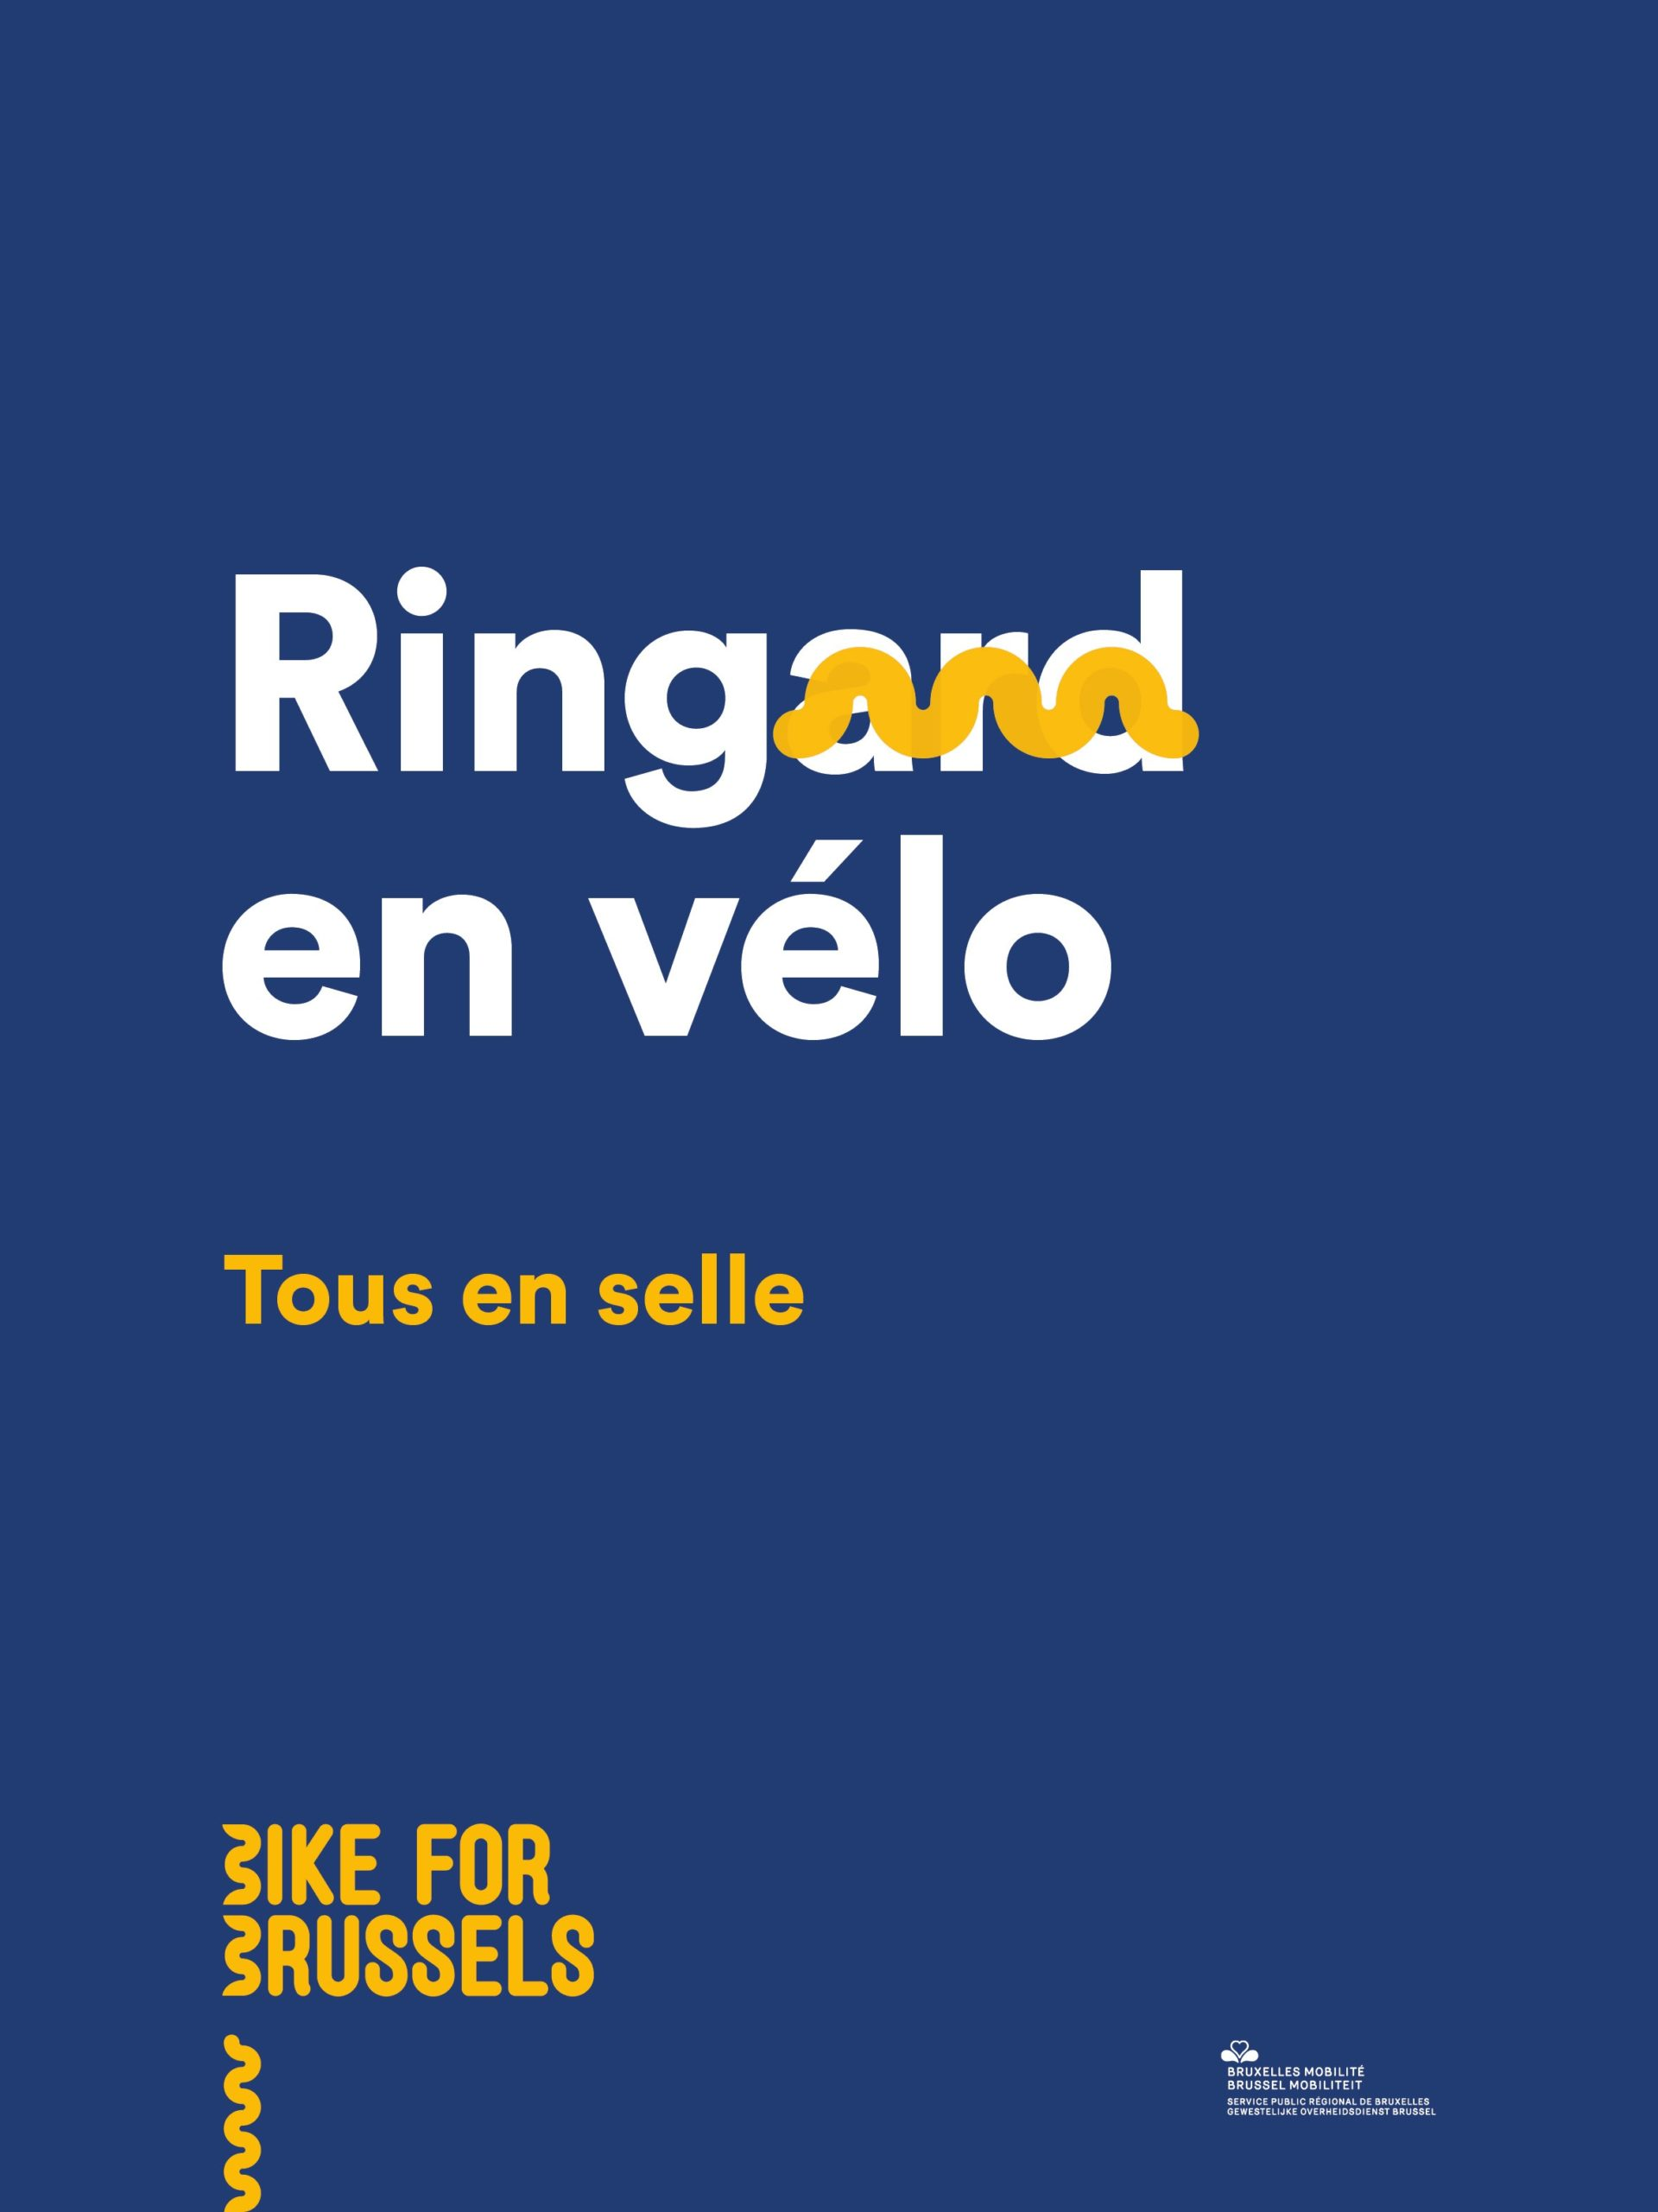 Bike For Brussels 10